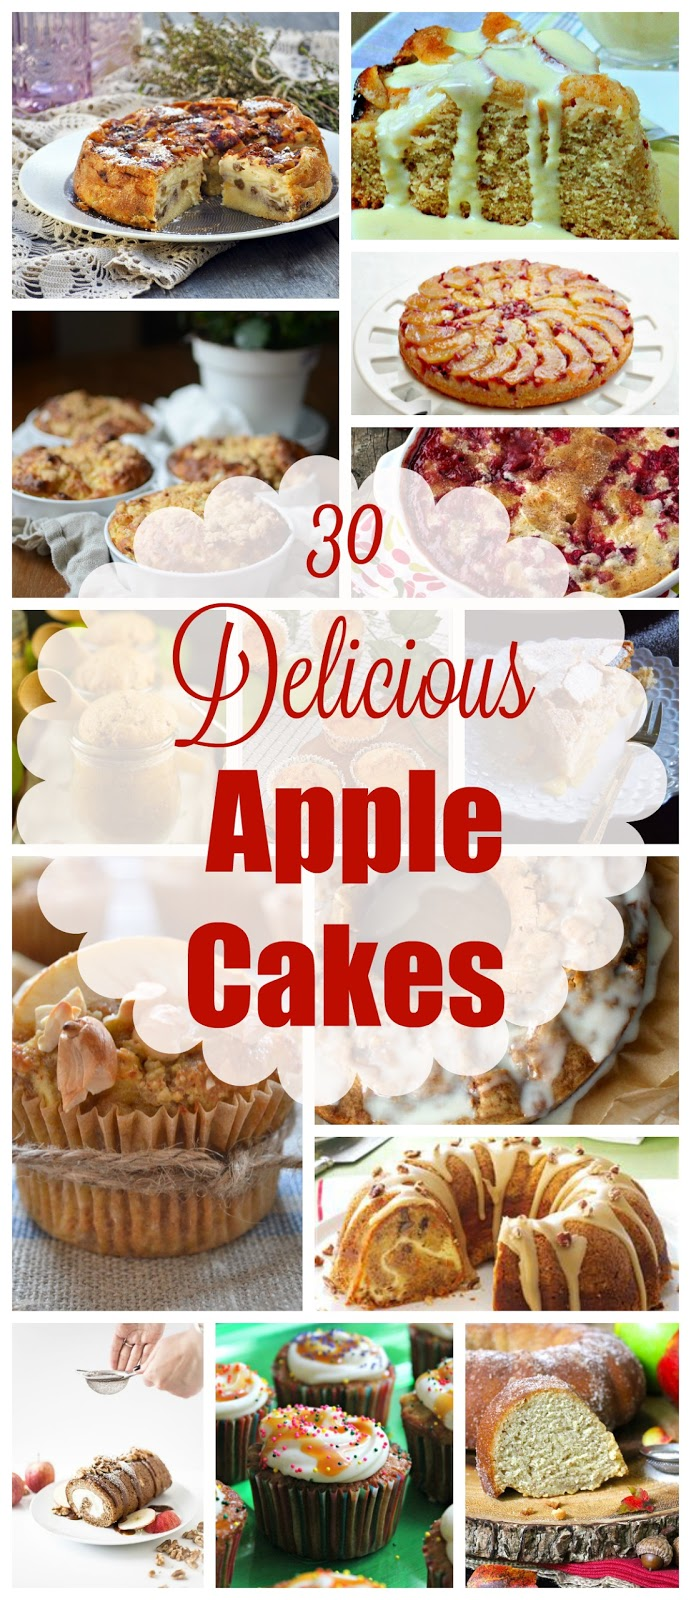 To celebrate Fall and Apple season, here's a delicious collection of 30 DELICIOUS APPLE CAKES!  Look no more! | manilaspoon.com